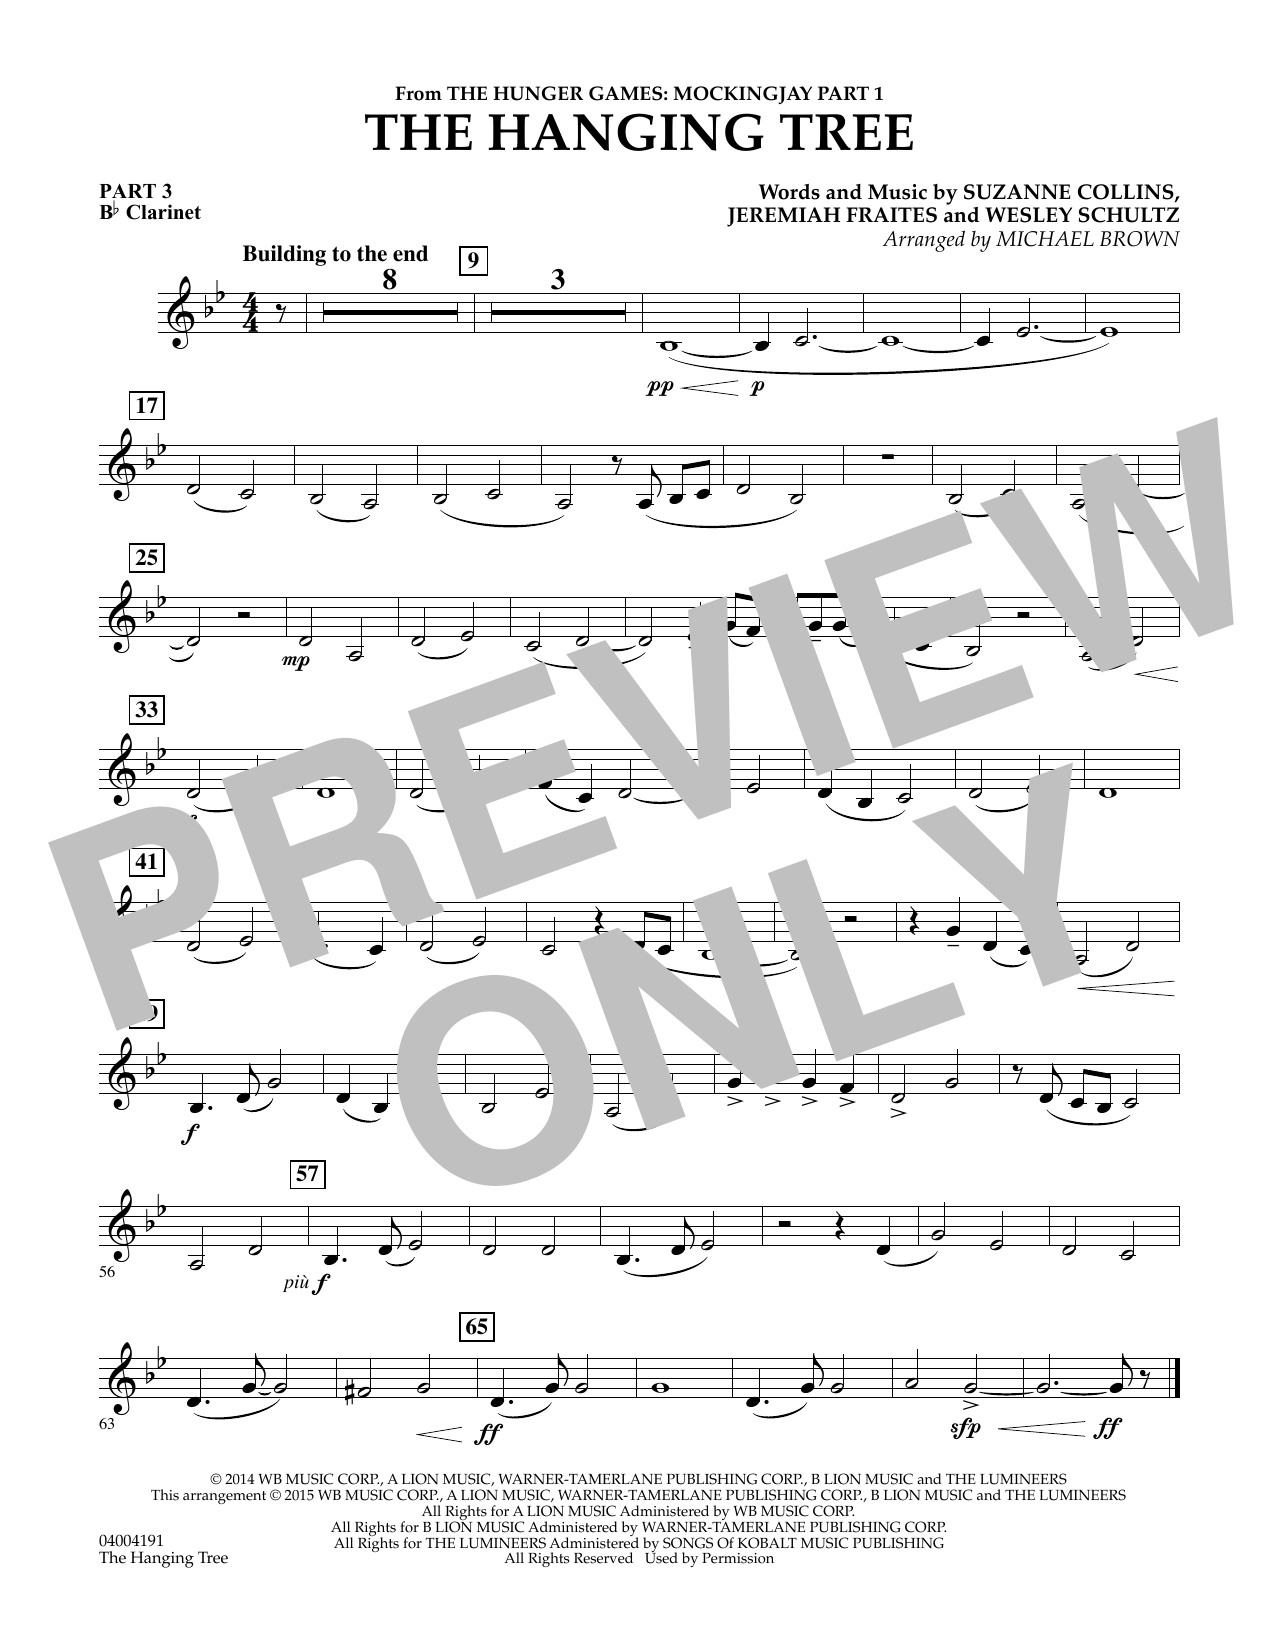 Michael Brown The Hanging Tree (from The Hunger Games: Mockingjay Part 1) - Pt.3 - Bb Clarinet sheet music notes and chords. Download Printable PDF.